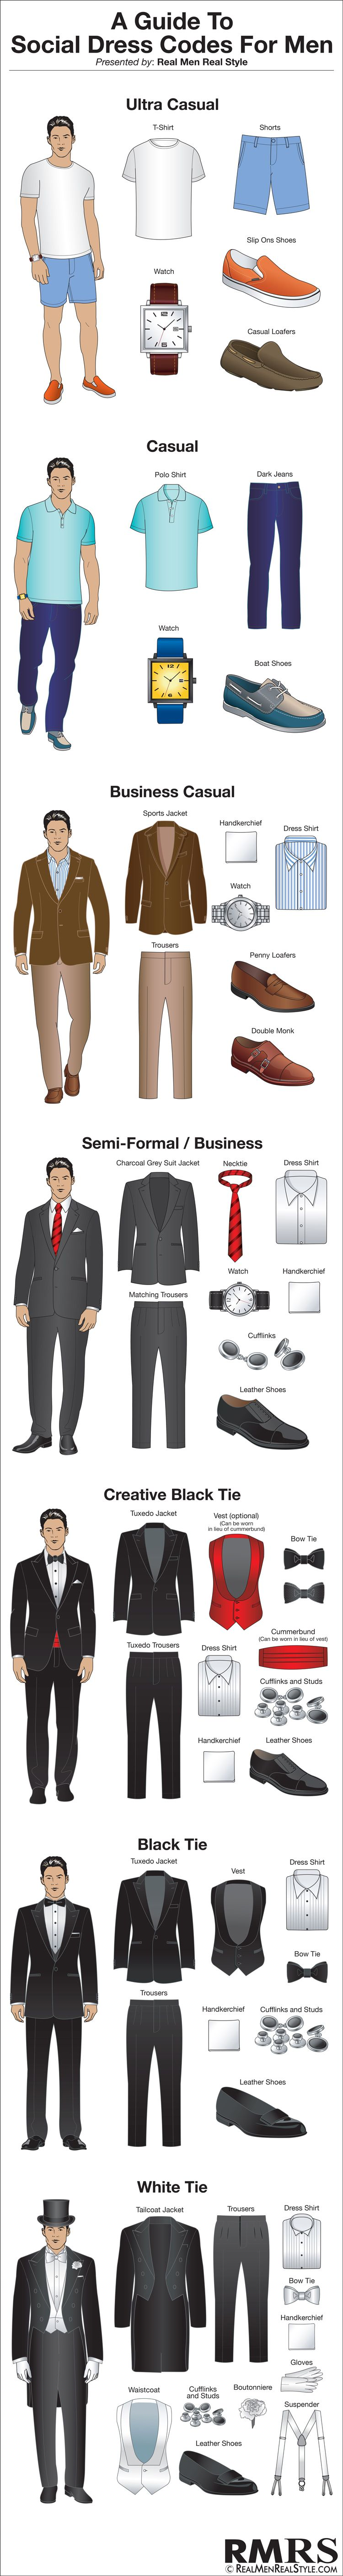 The dress explained - A Guide To Social Dress Codes For Men Explained